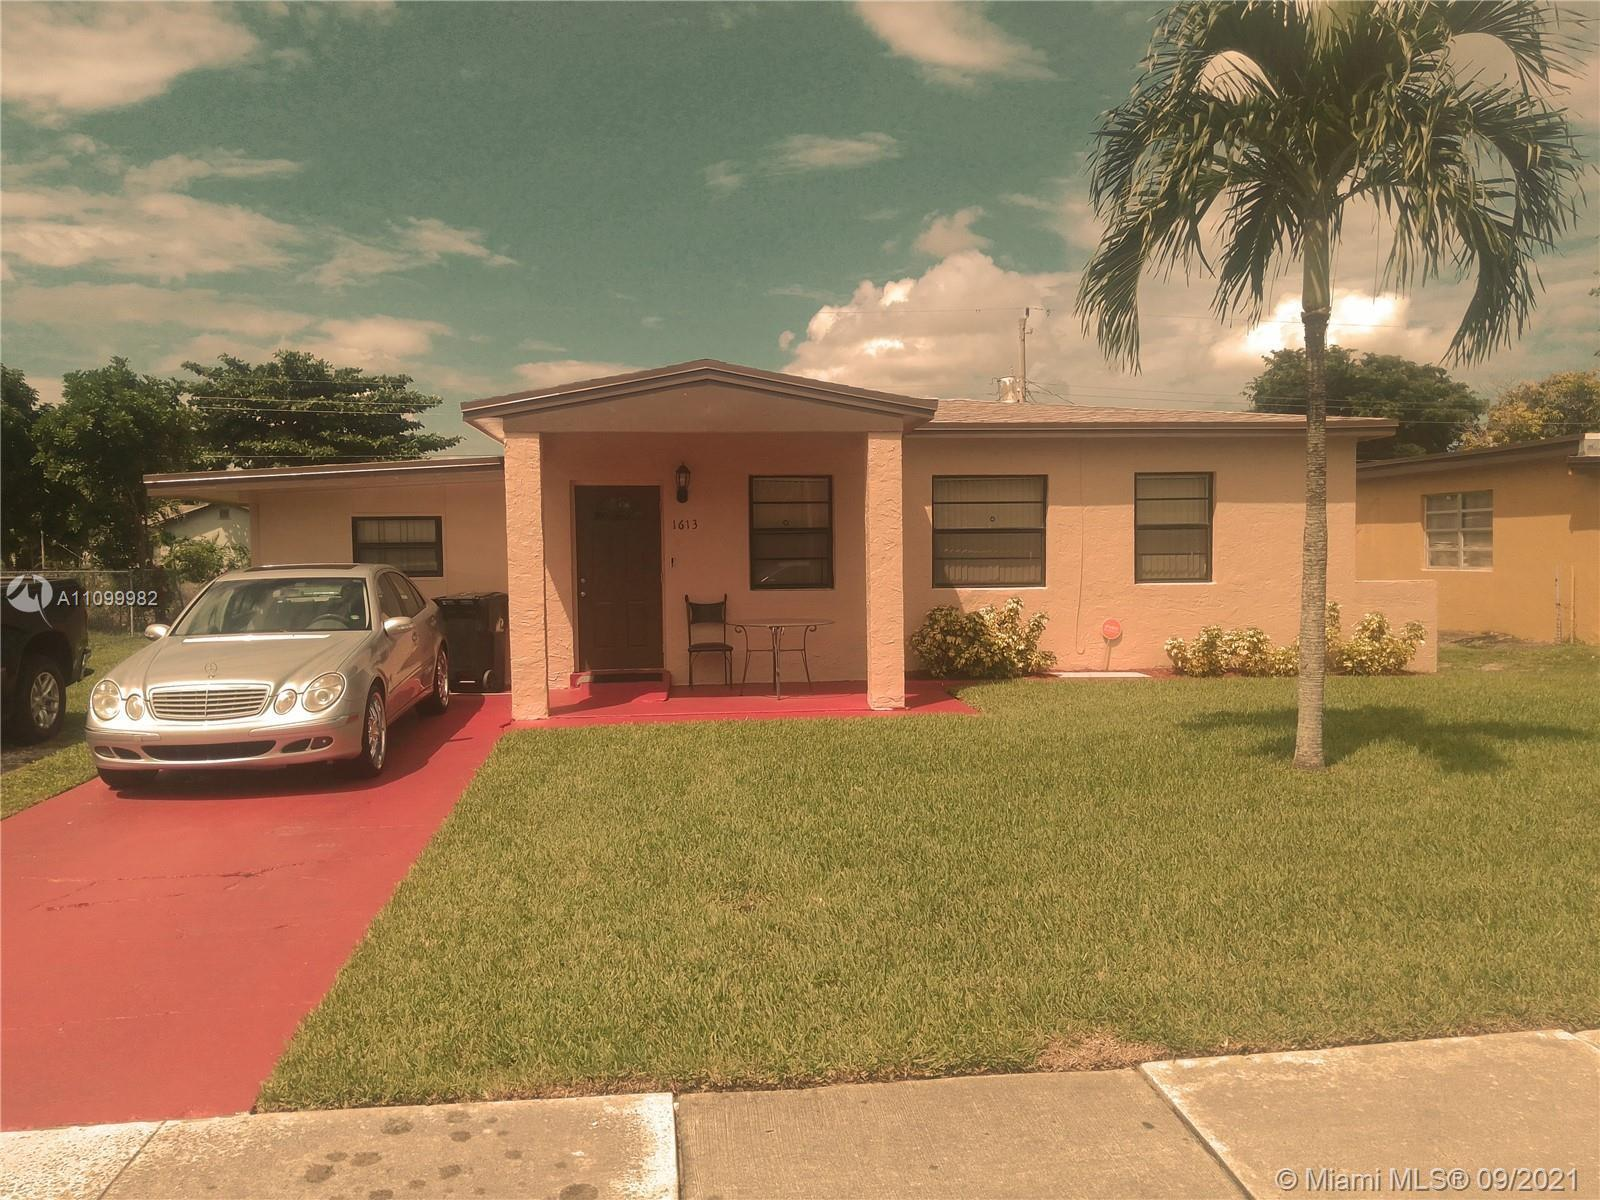 Move in ready updated home. Easy access to highways, Beach, Shopping, etc. Well maintained property